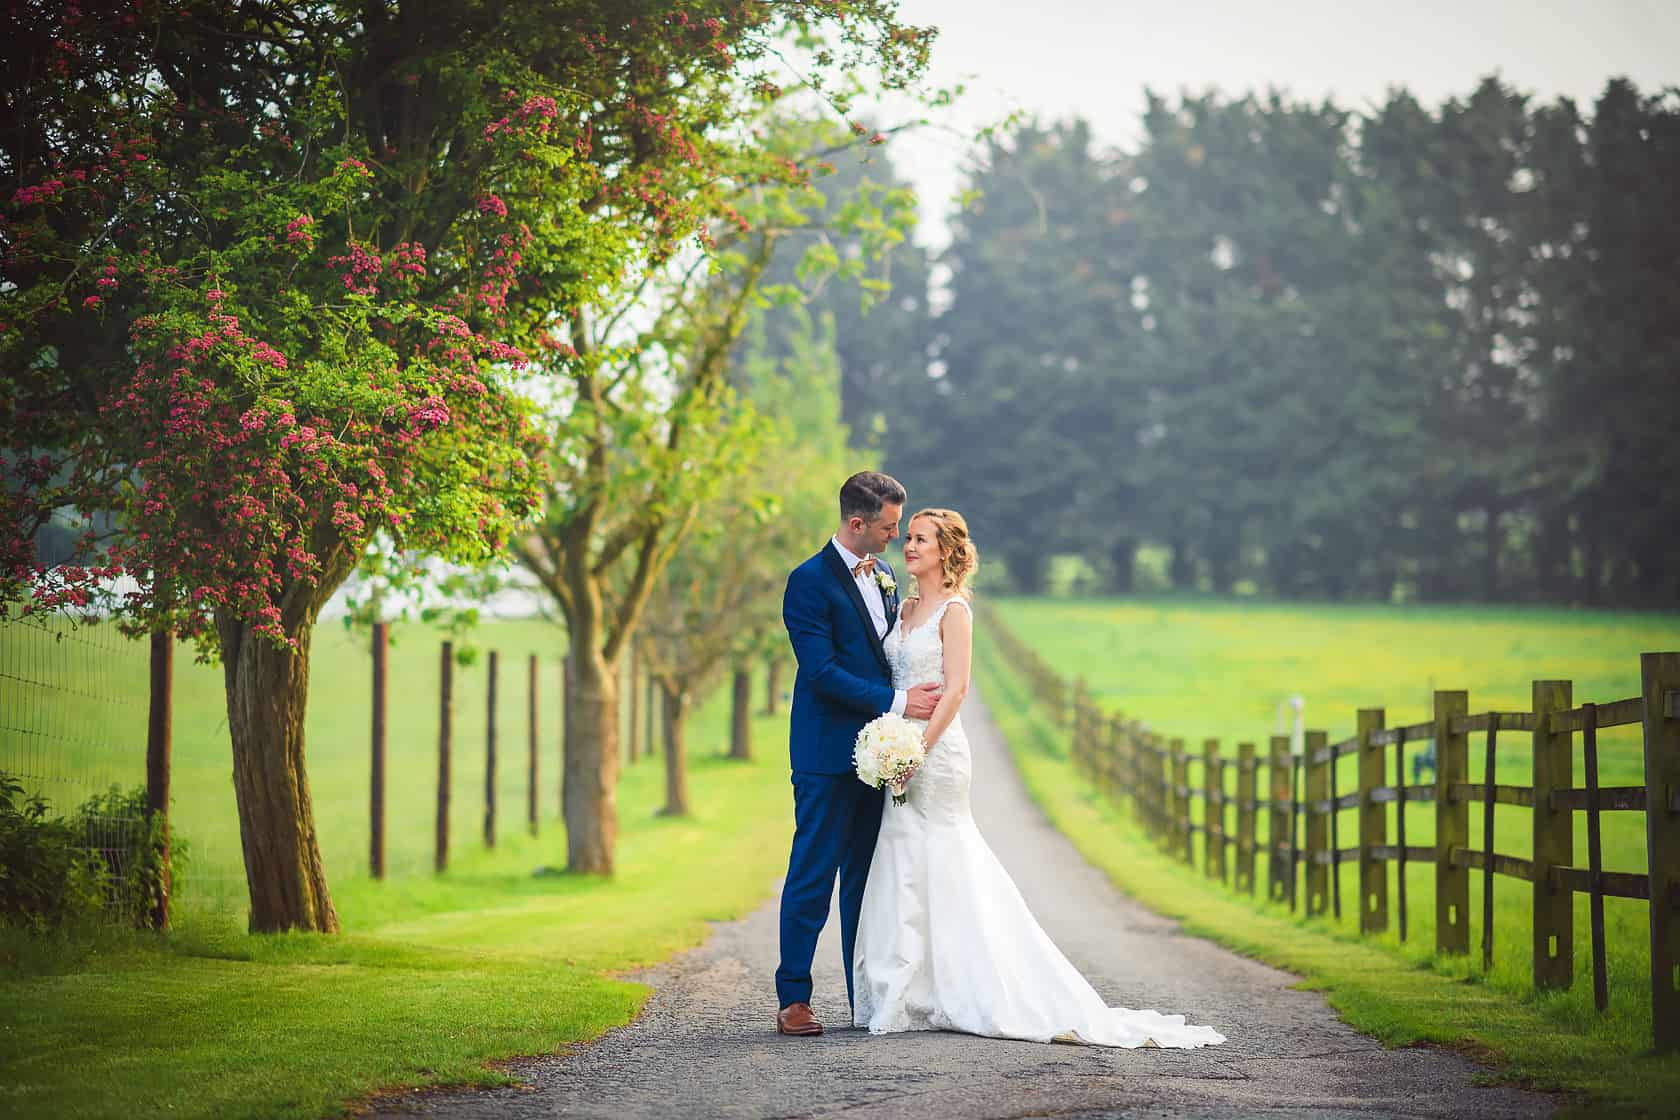 Best_Wedding_Photography_2018_Wedding-Photographer-Essex-and-London_037